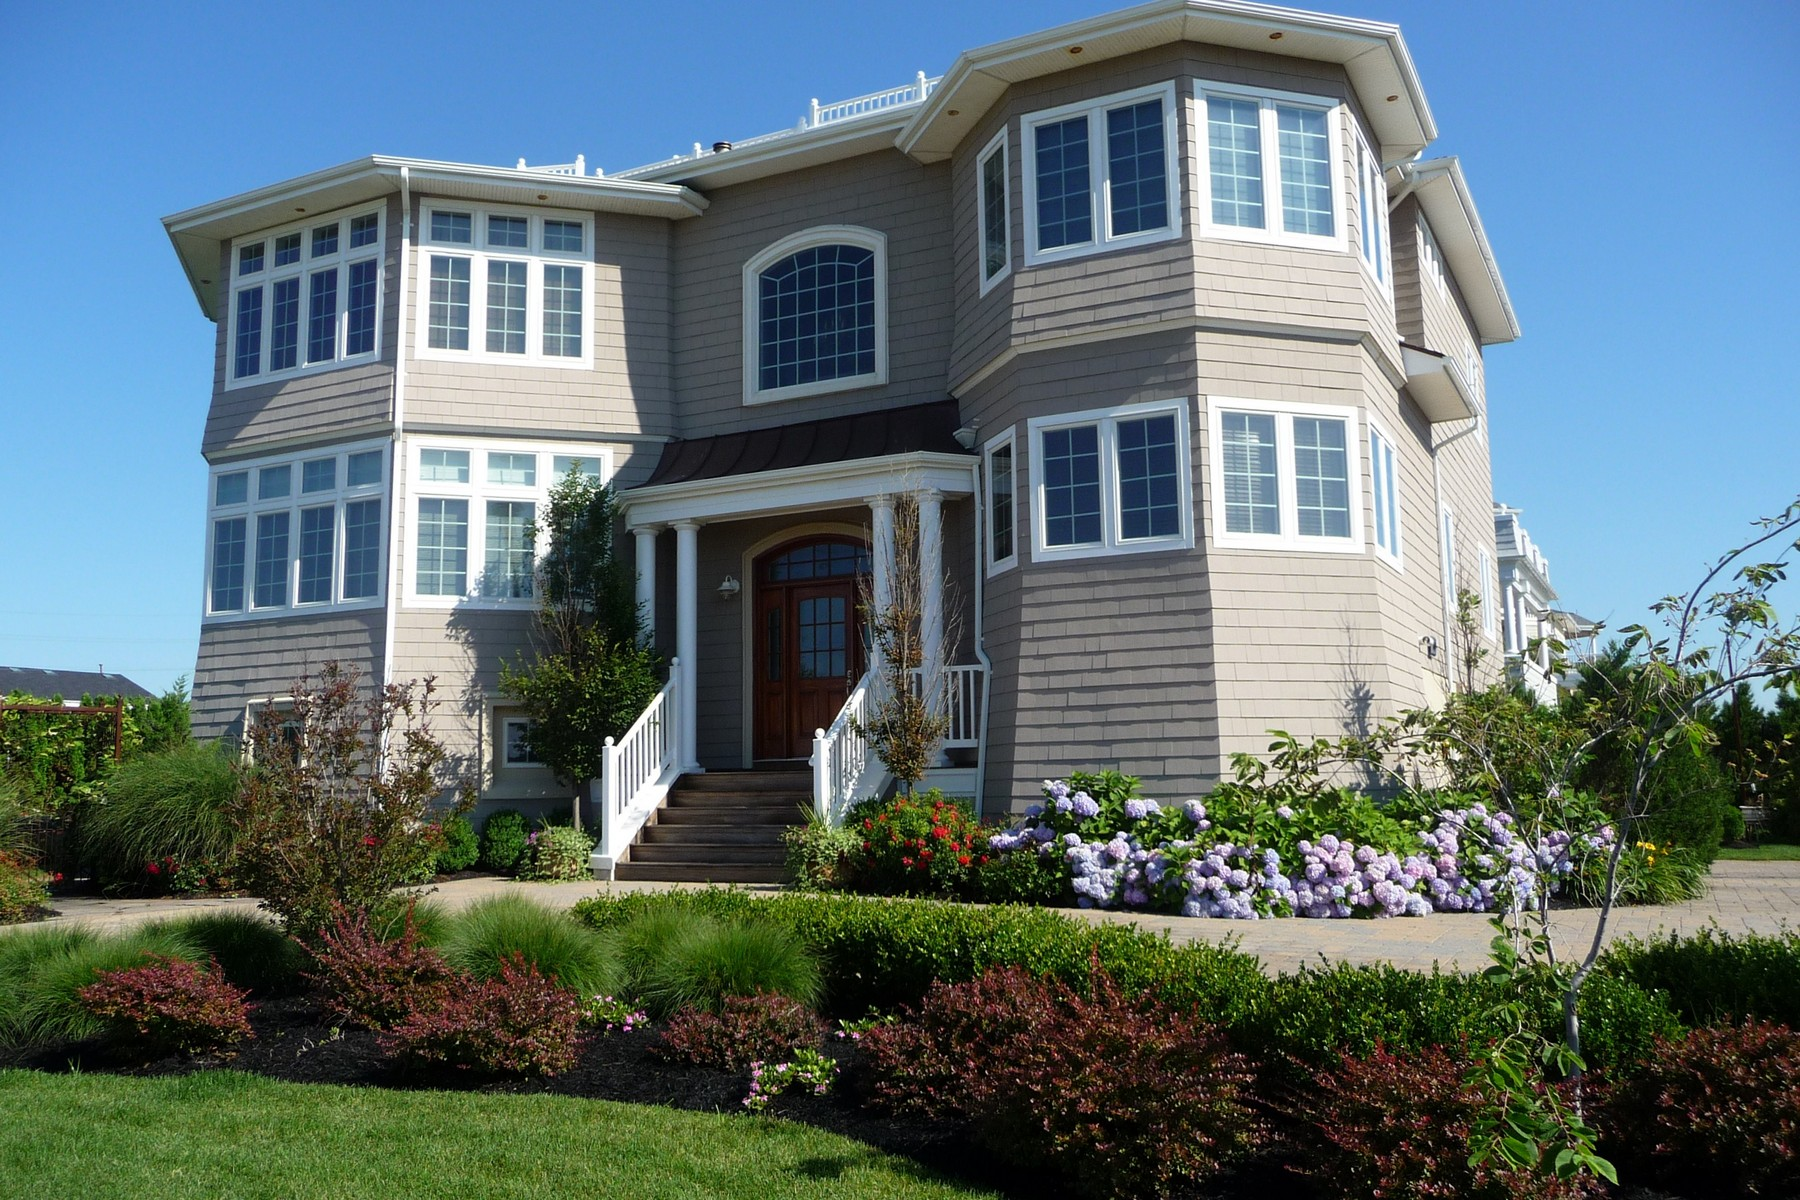 Single Family Home for Sale at Seaside Paradise 18 Tradewinds Ln Sea Bright, New Jersey 07760 United States